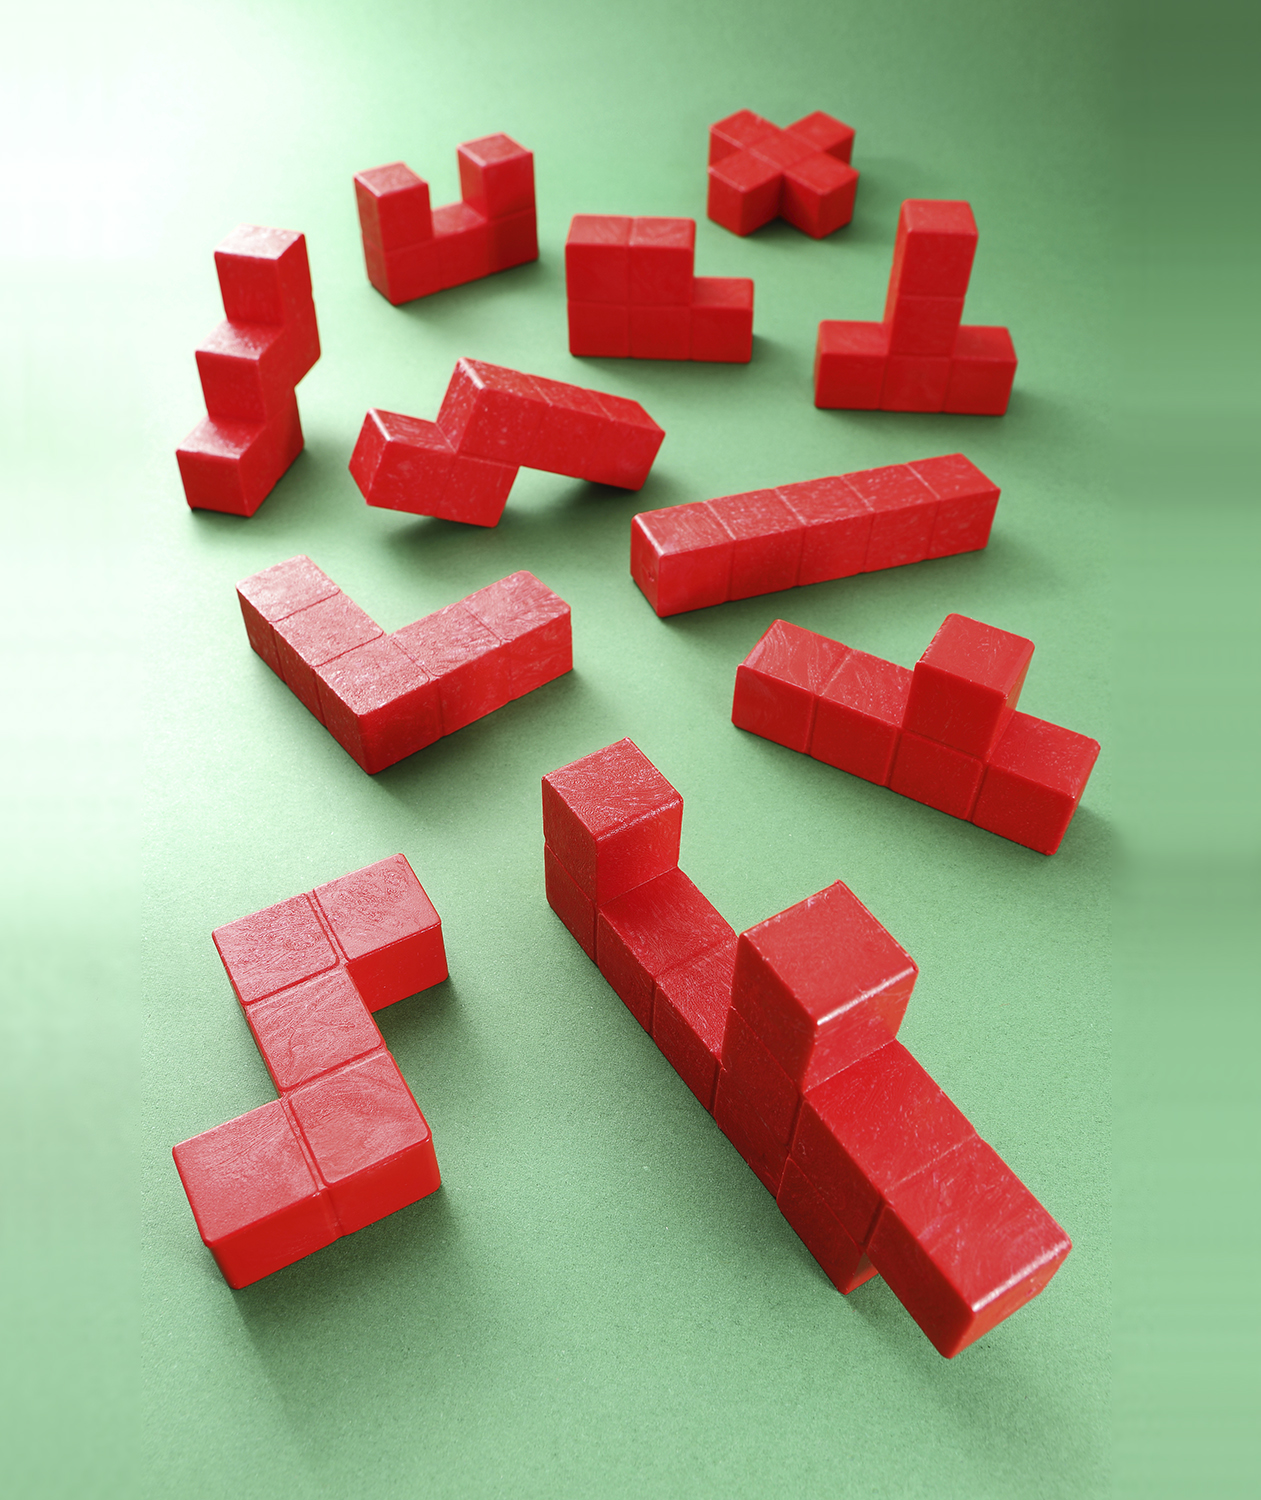 Red Tetris pieces on green background